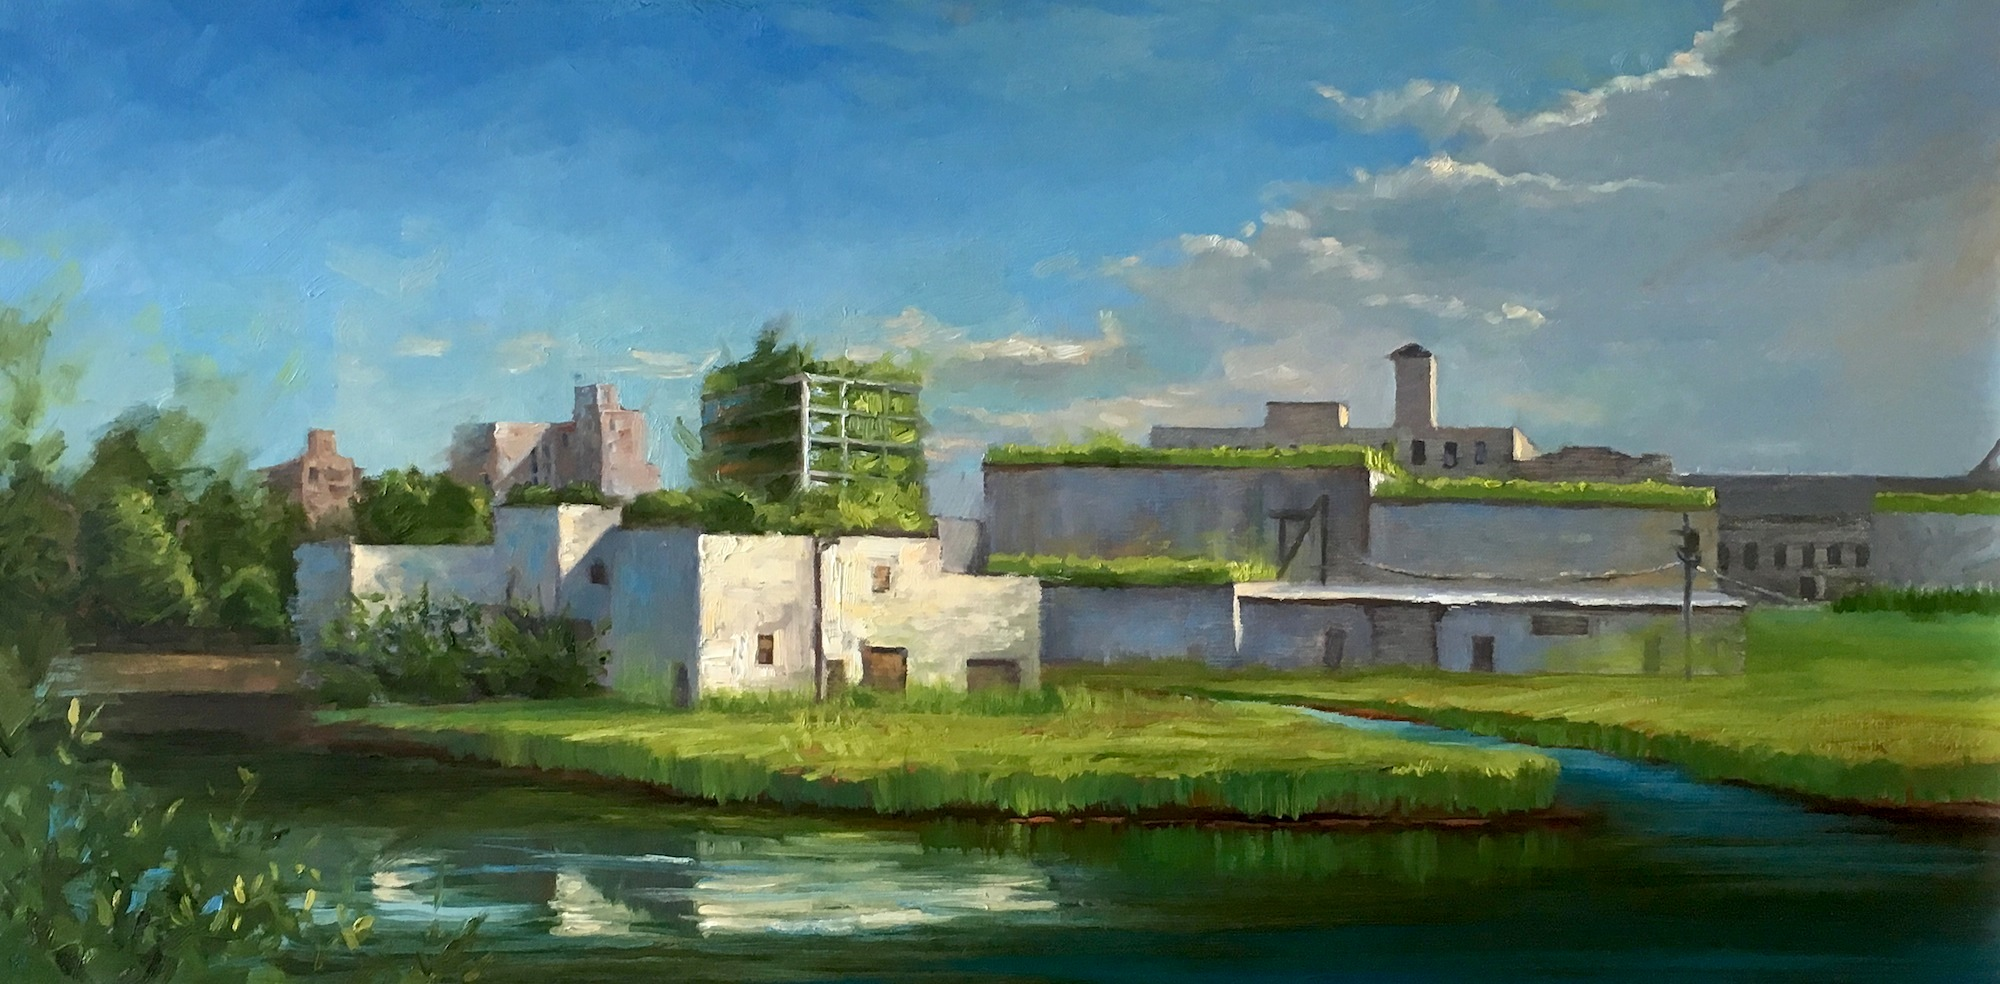 7.J.Dalrymple Urbanscape IV, 18x36 oil on canvas.JPG